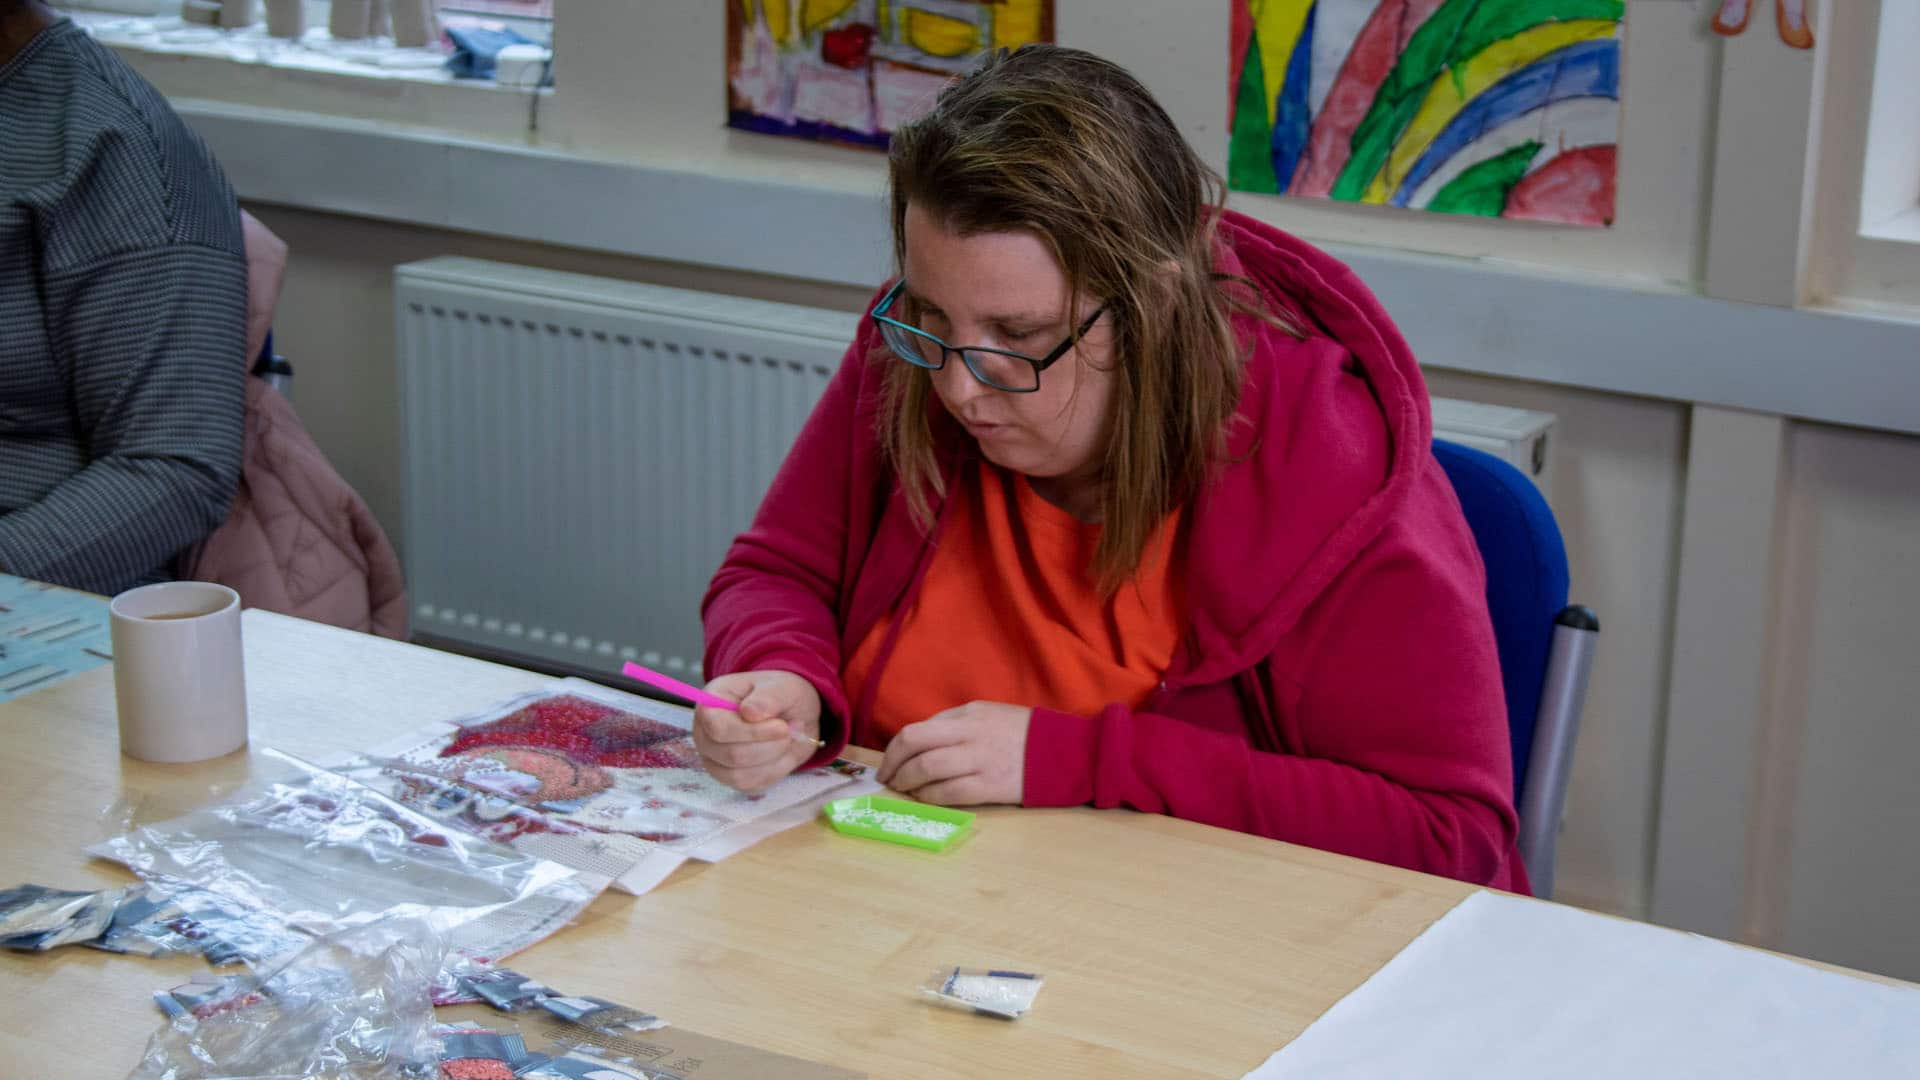 Service users working in the arts and crafts room